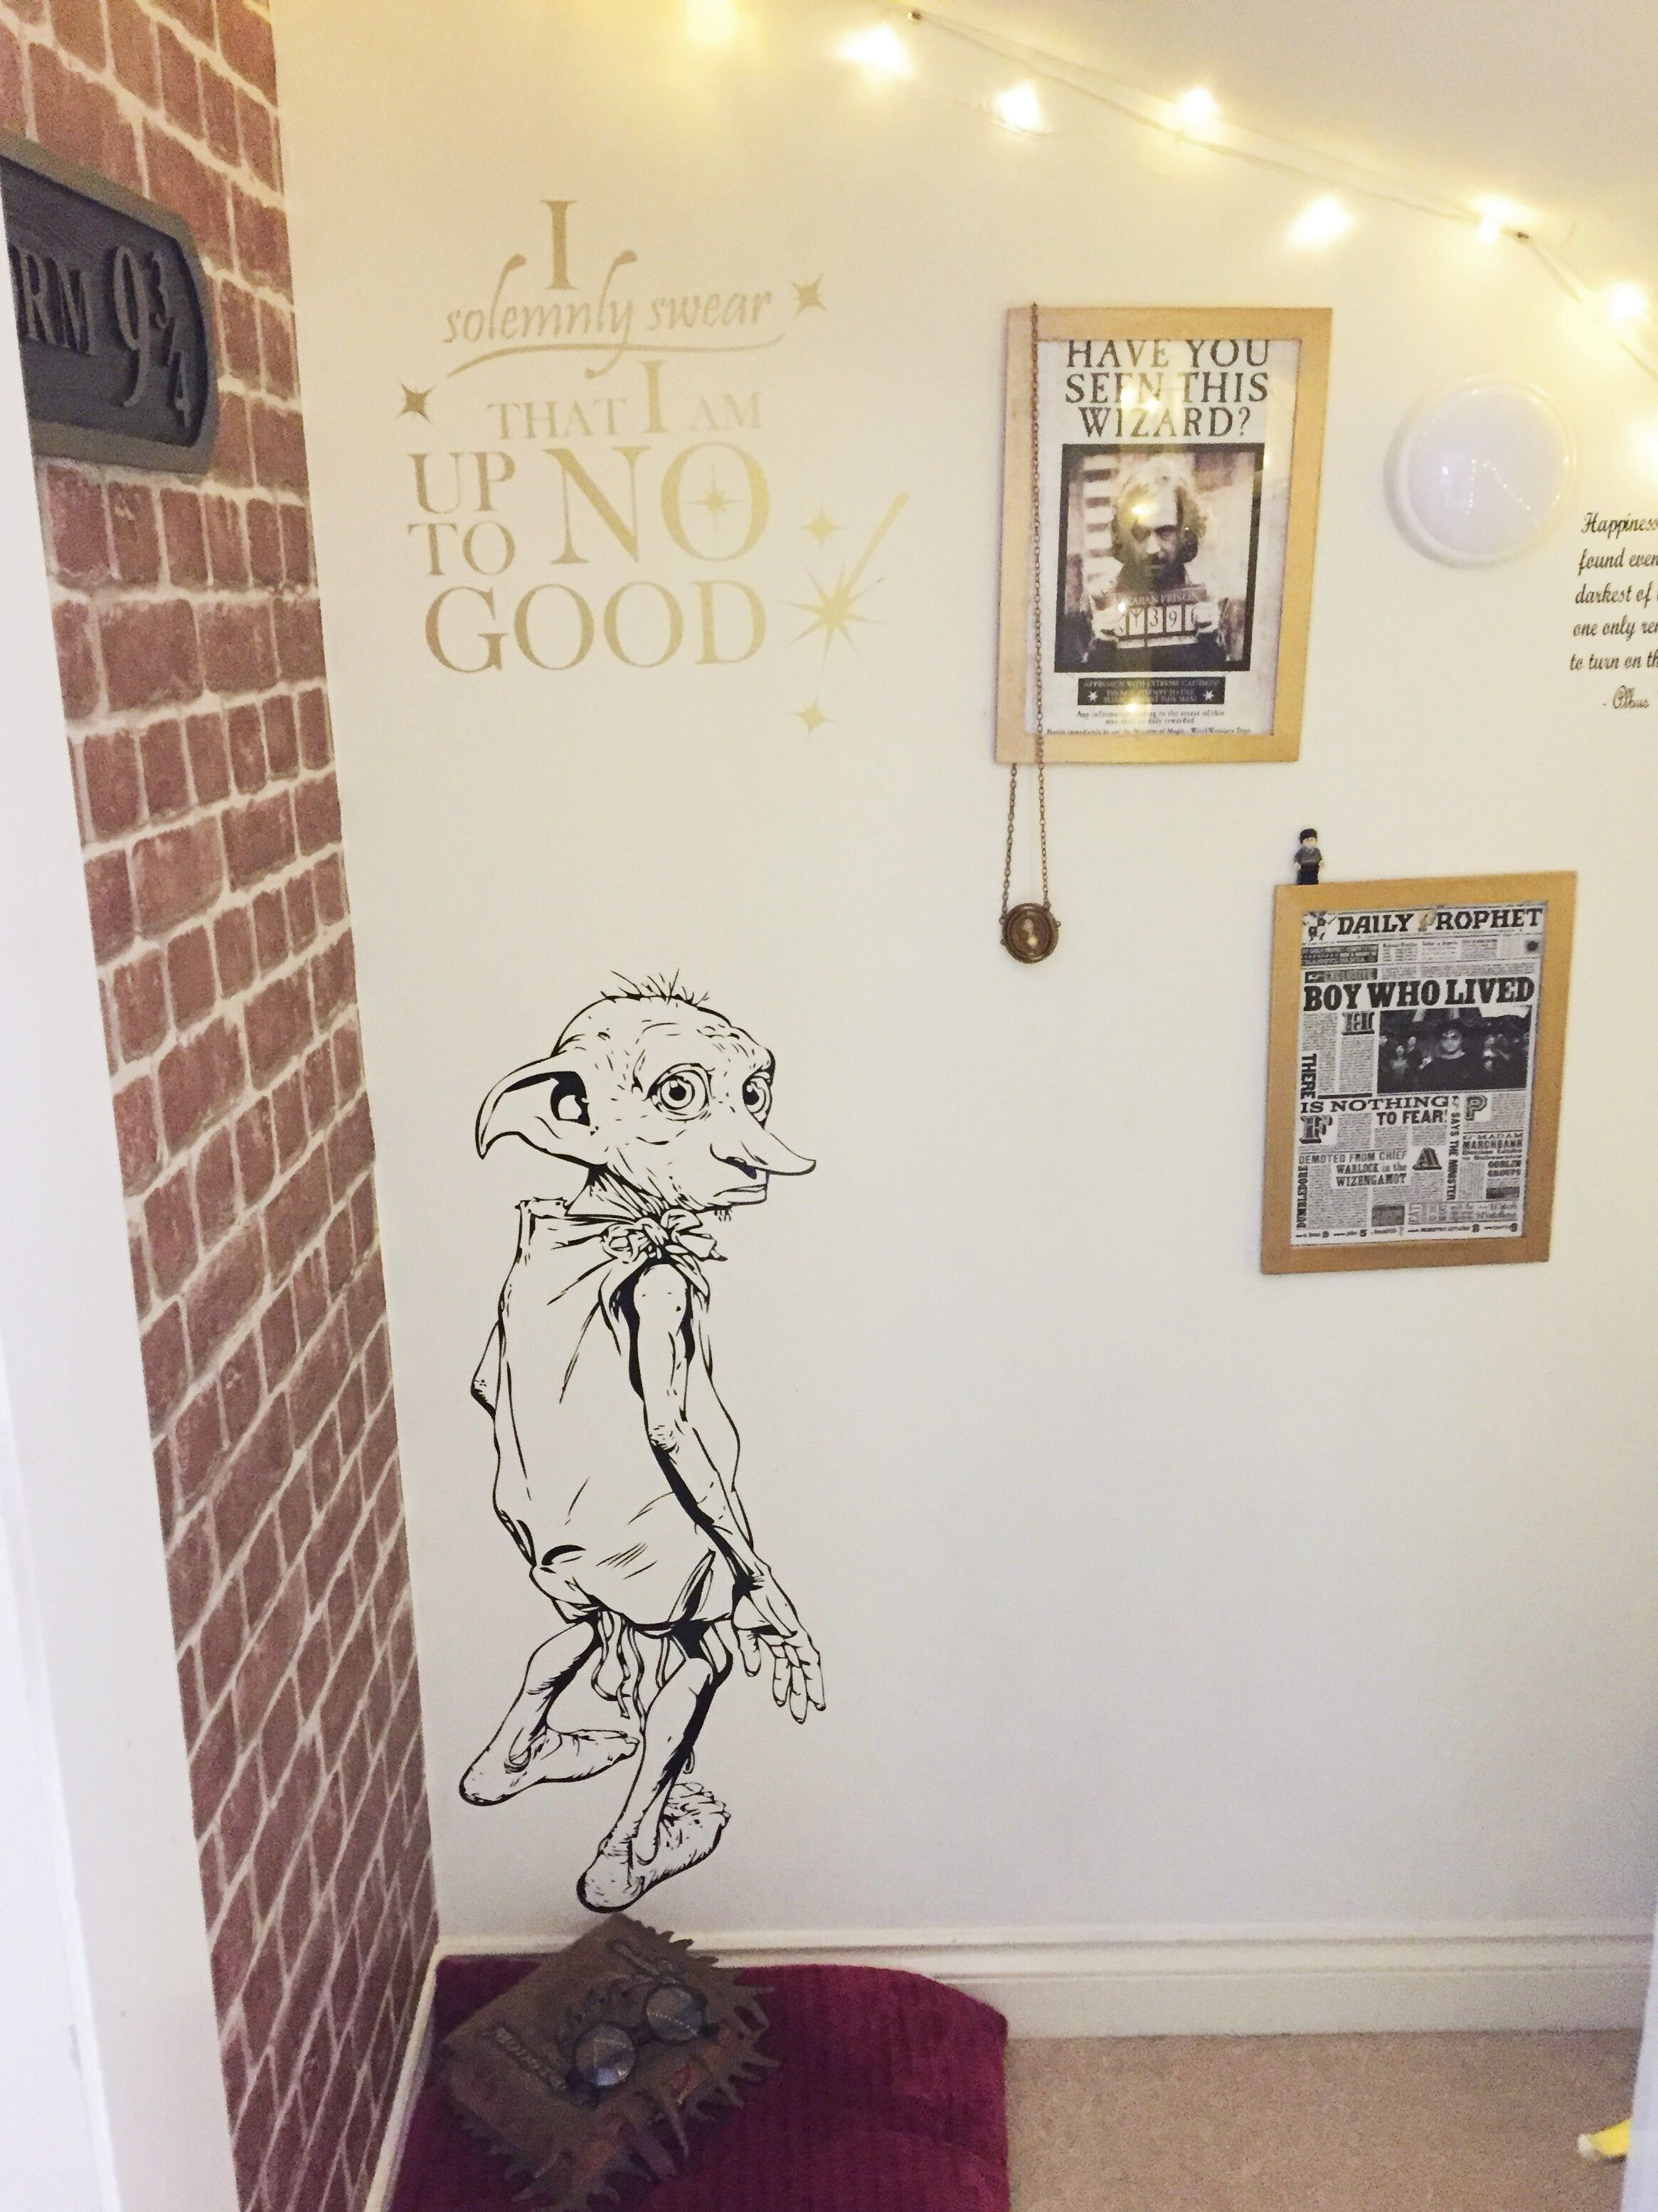 new addition to my harry potter cupboard under the stairs dobby is a free elf gorgeous wall. Black Bedroom Furniture Sets. Home Design Ideas